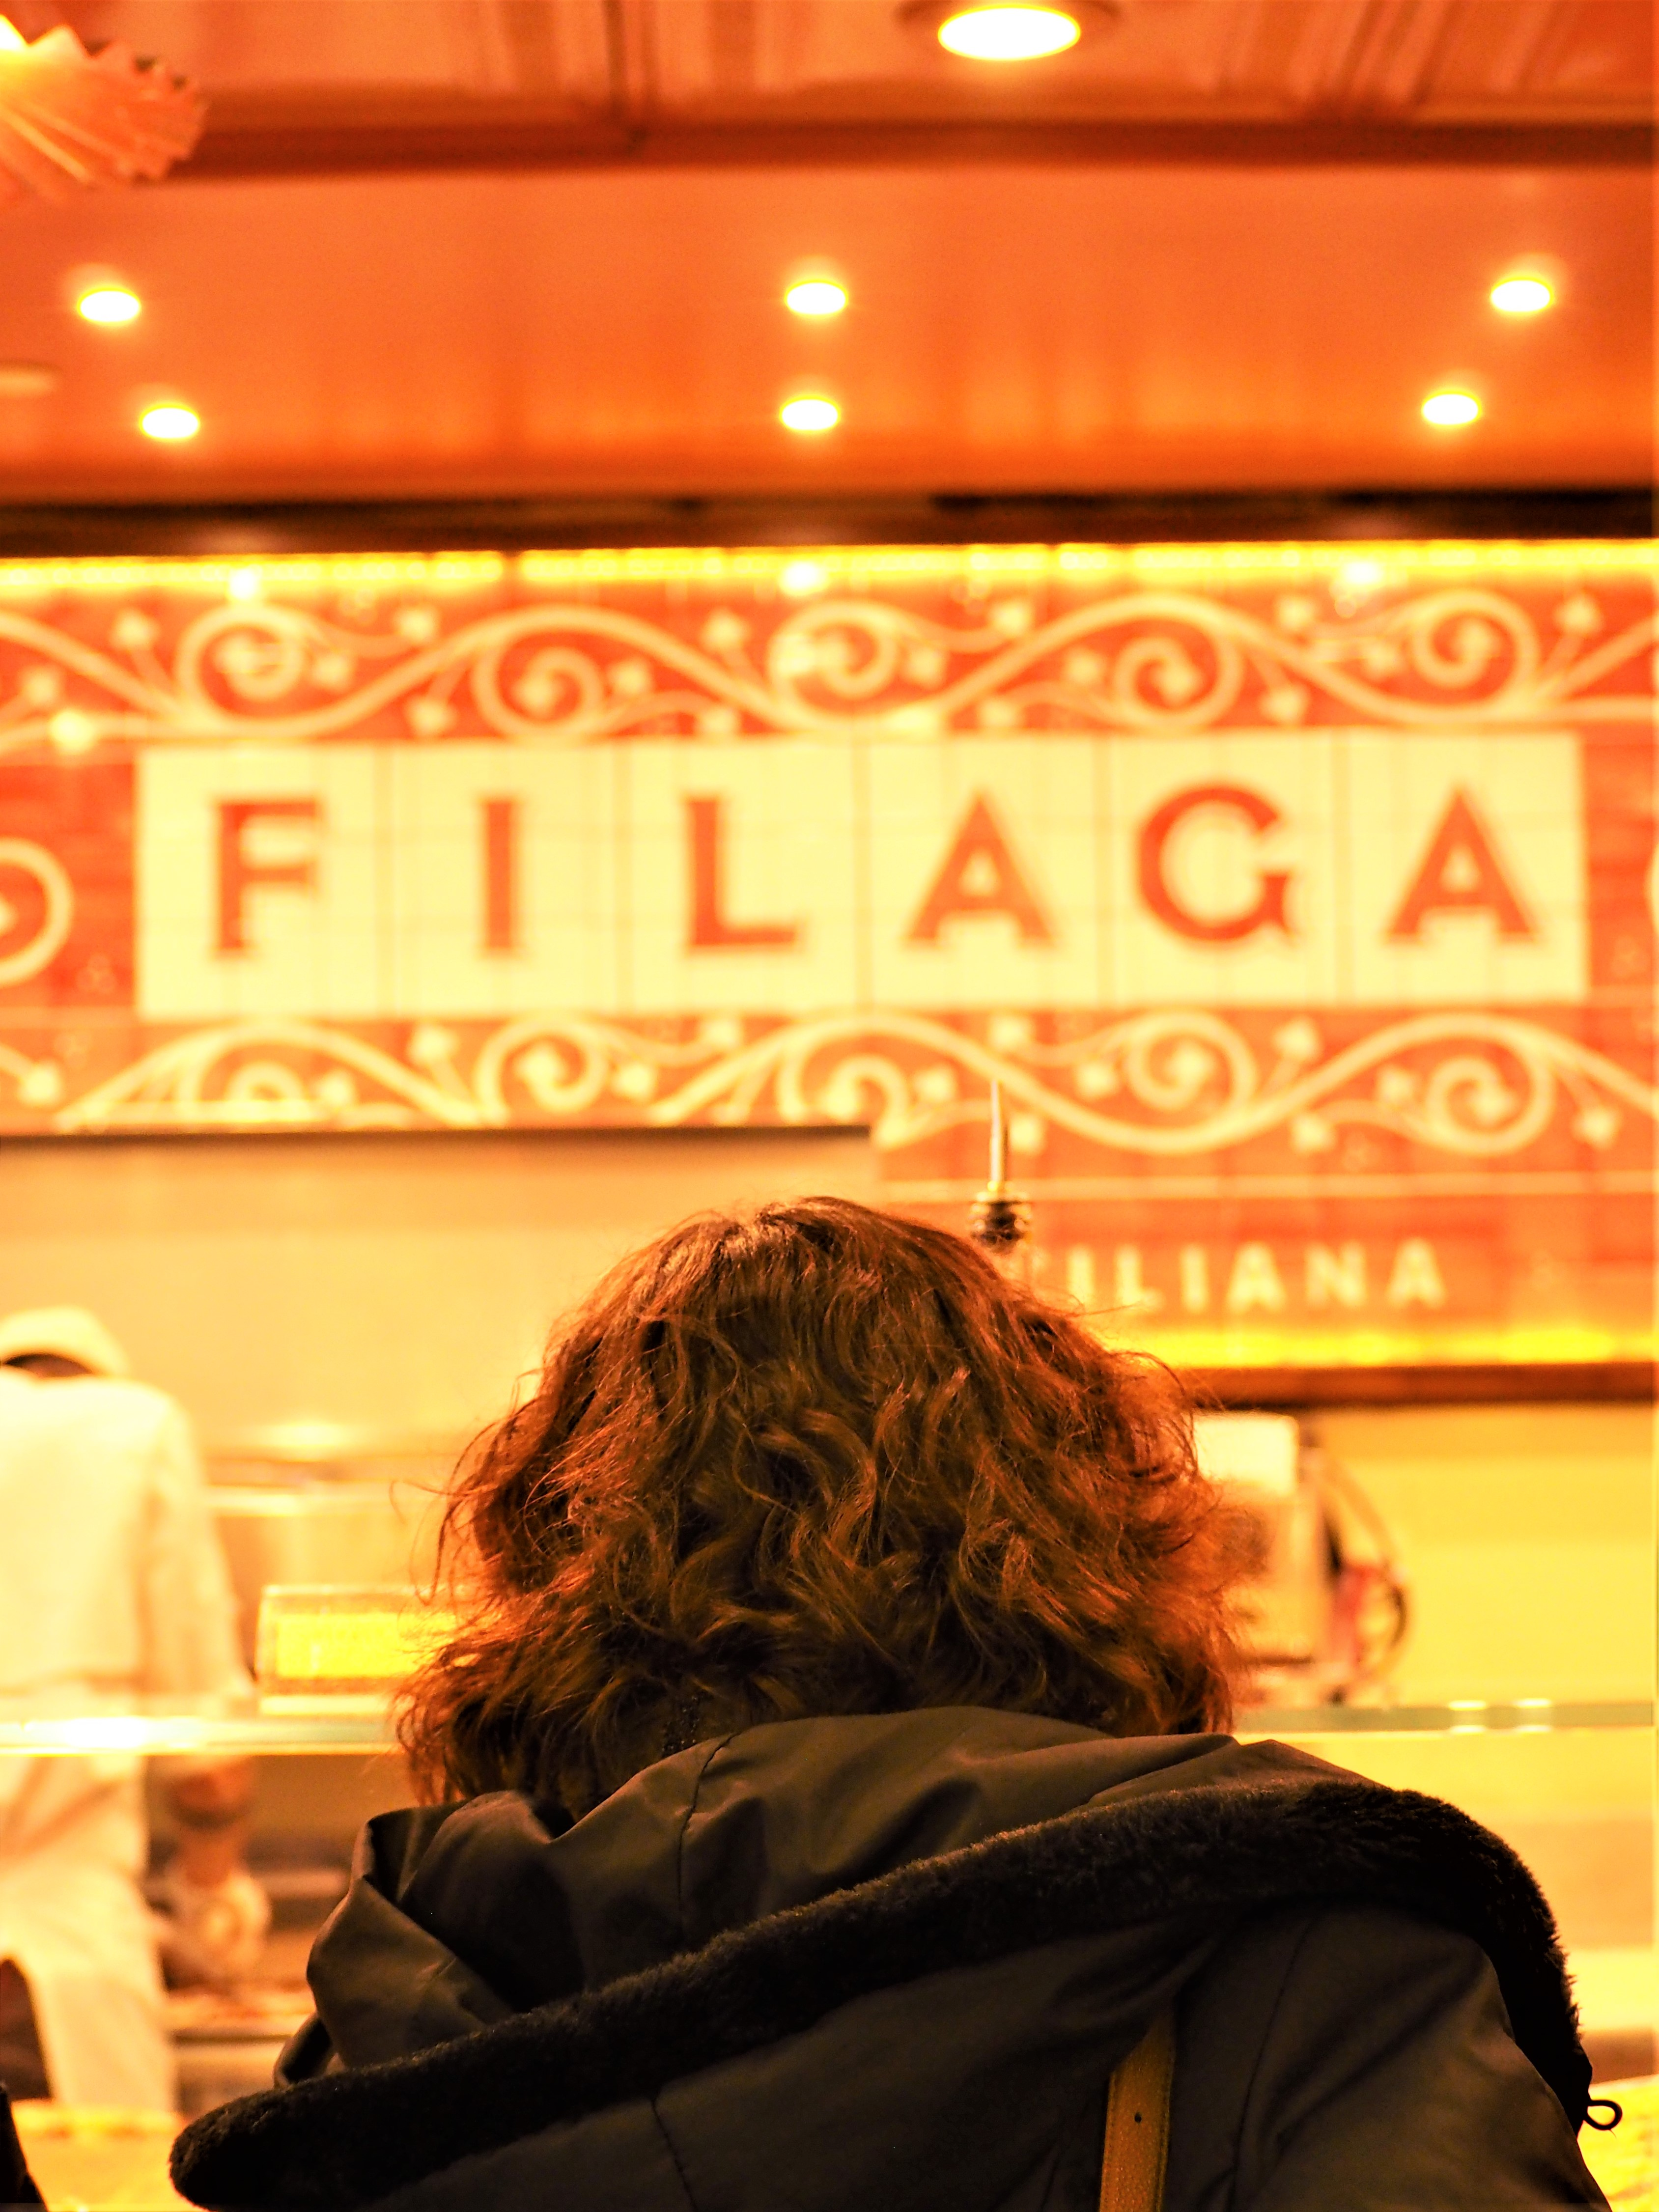 Voyage-a-New-York-USA-clioandco-Blog-voyages-Filaga-pizze-chealsea-market